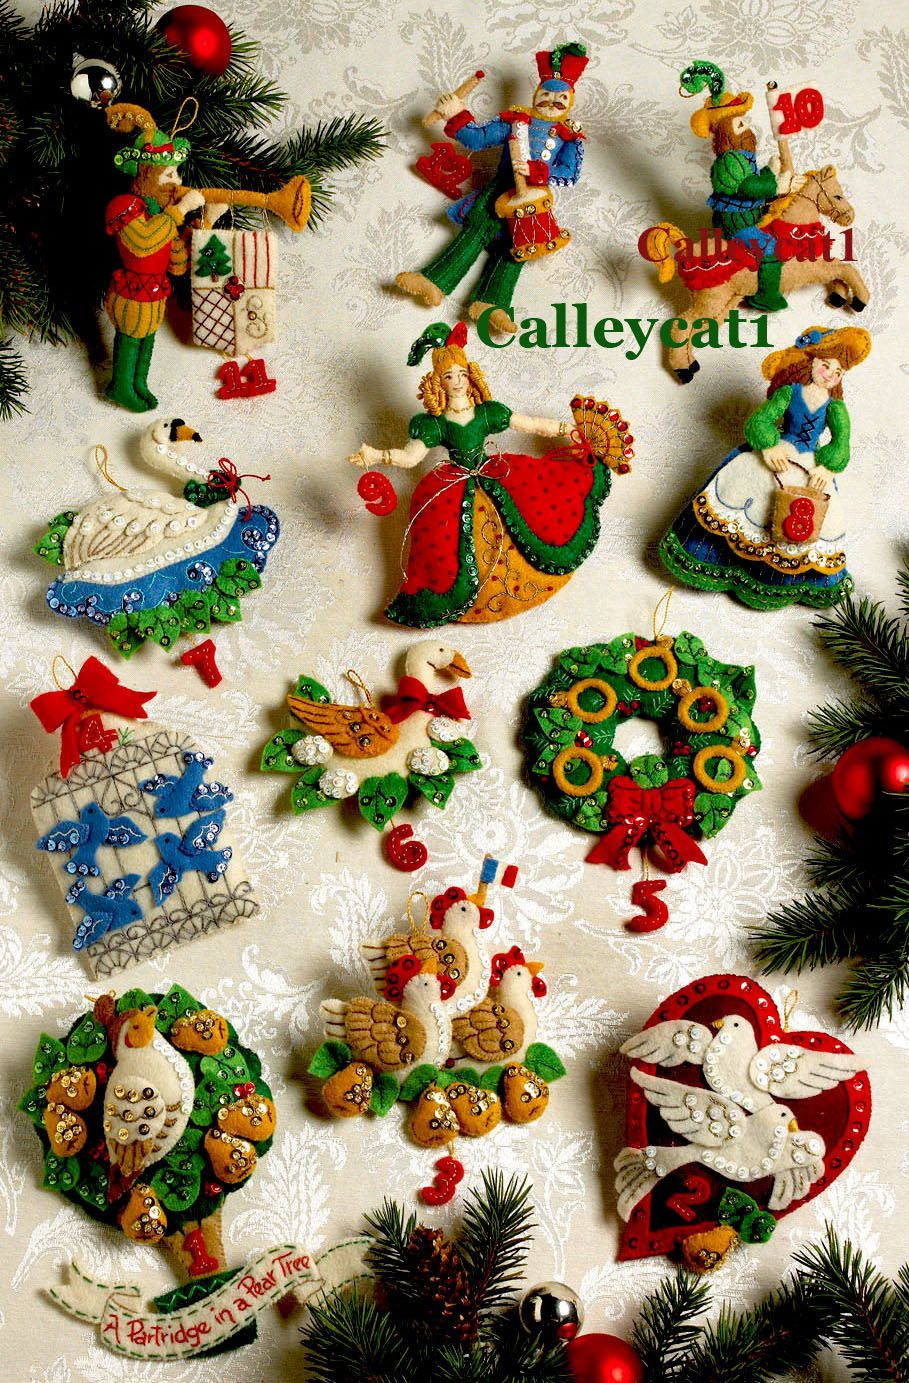 Christmas felt ornaments - 12 Days Of Christmas Bucilla Felt Ornament Kit 86066 Fth Studio Internationalfth Studio International